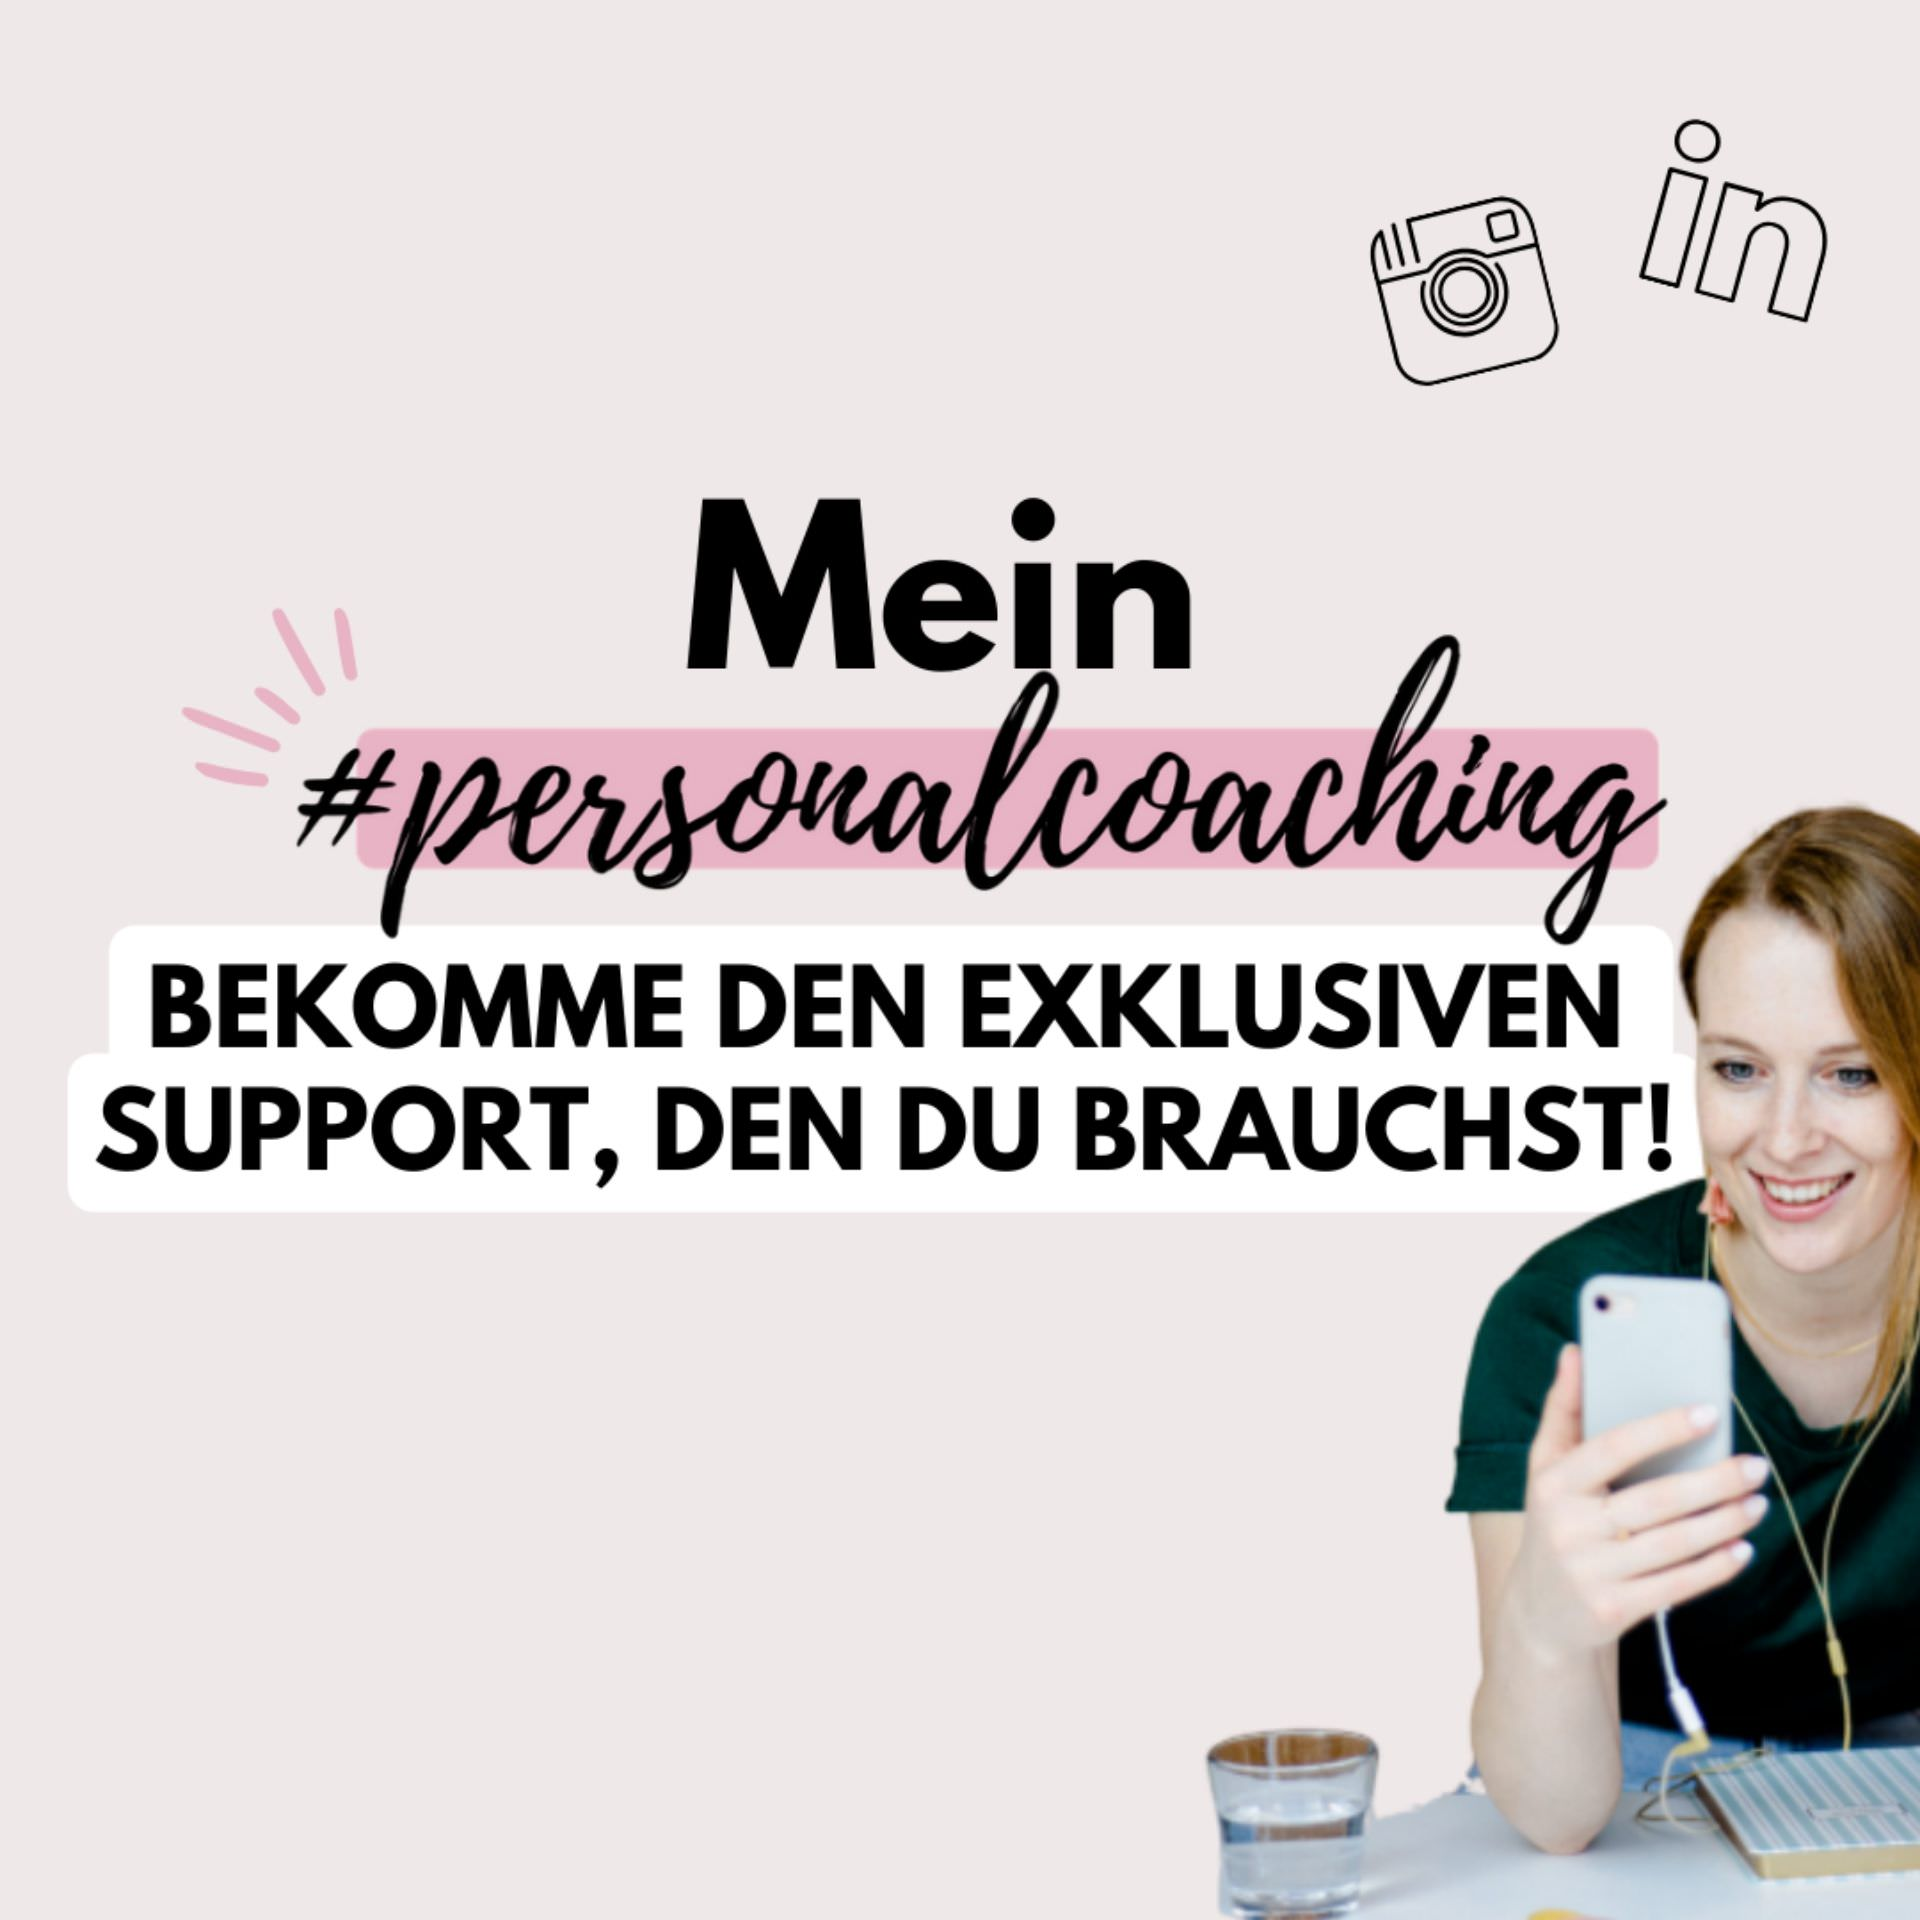 Mein #personalcoaching